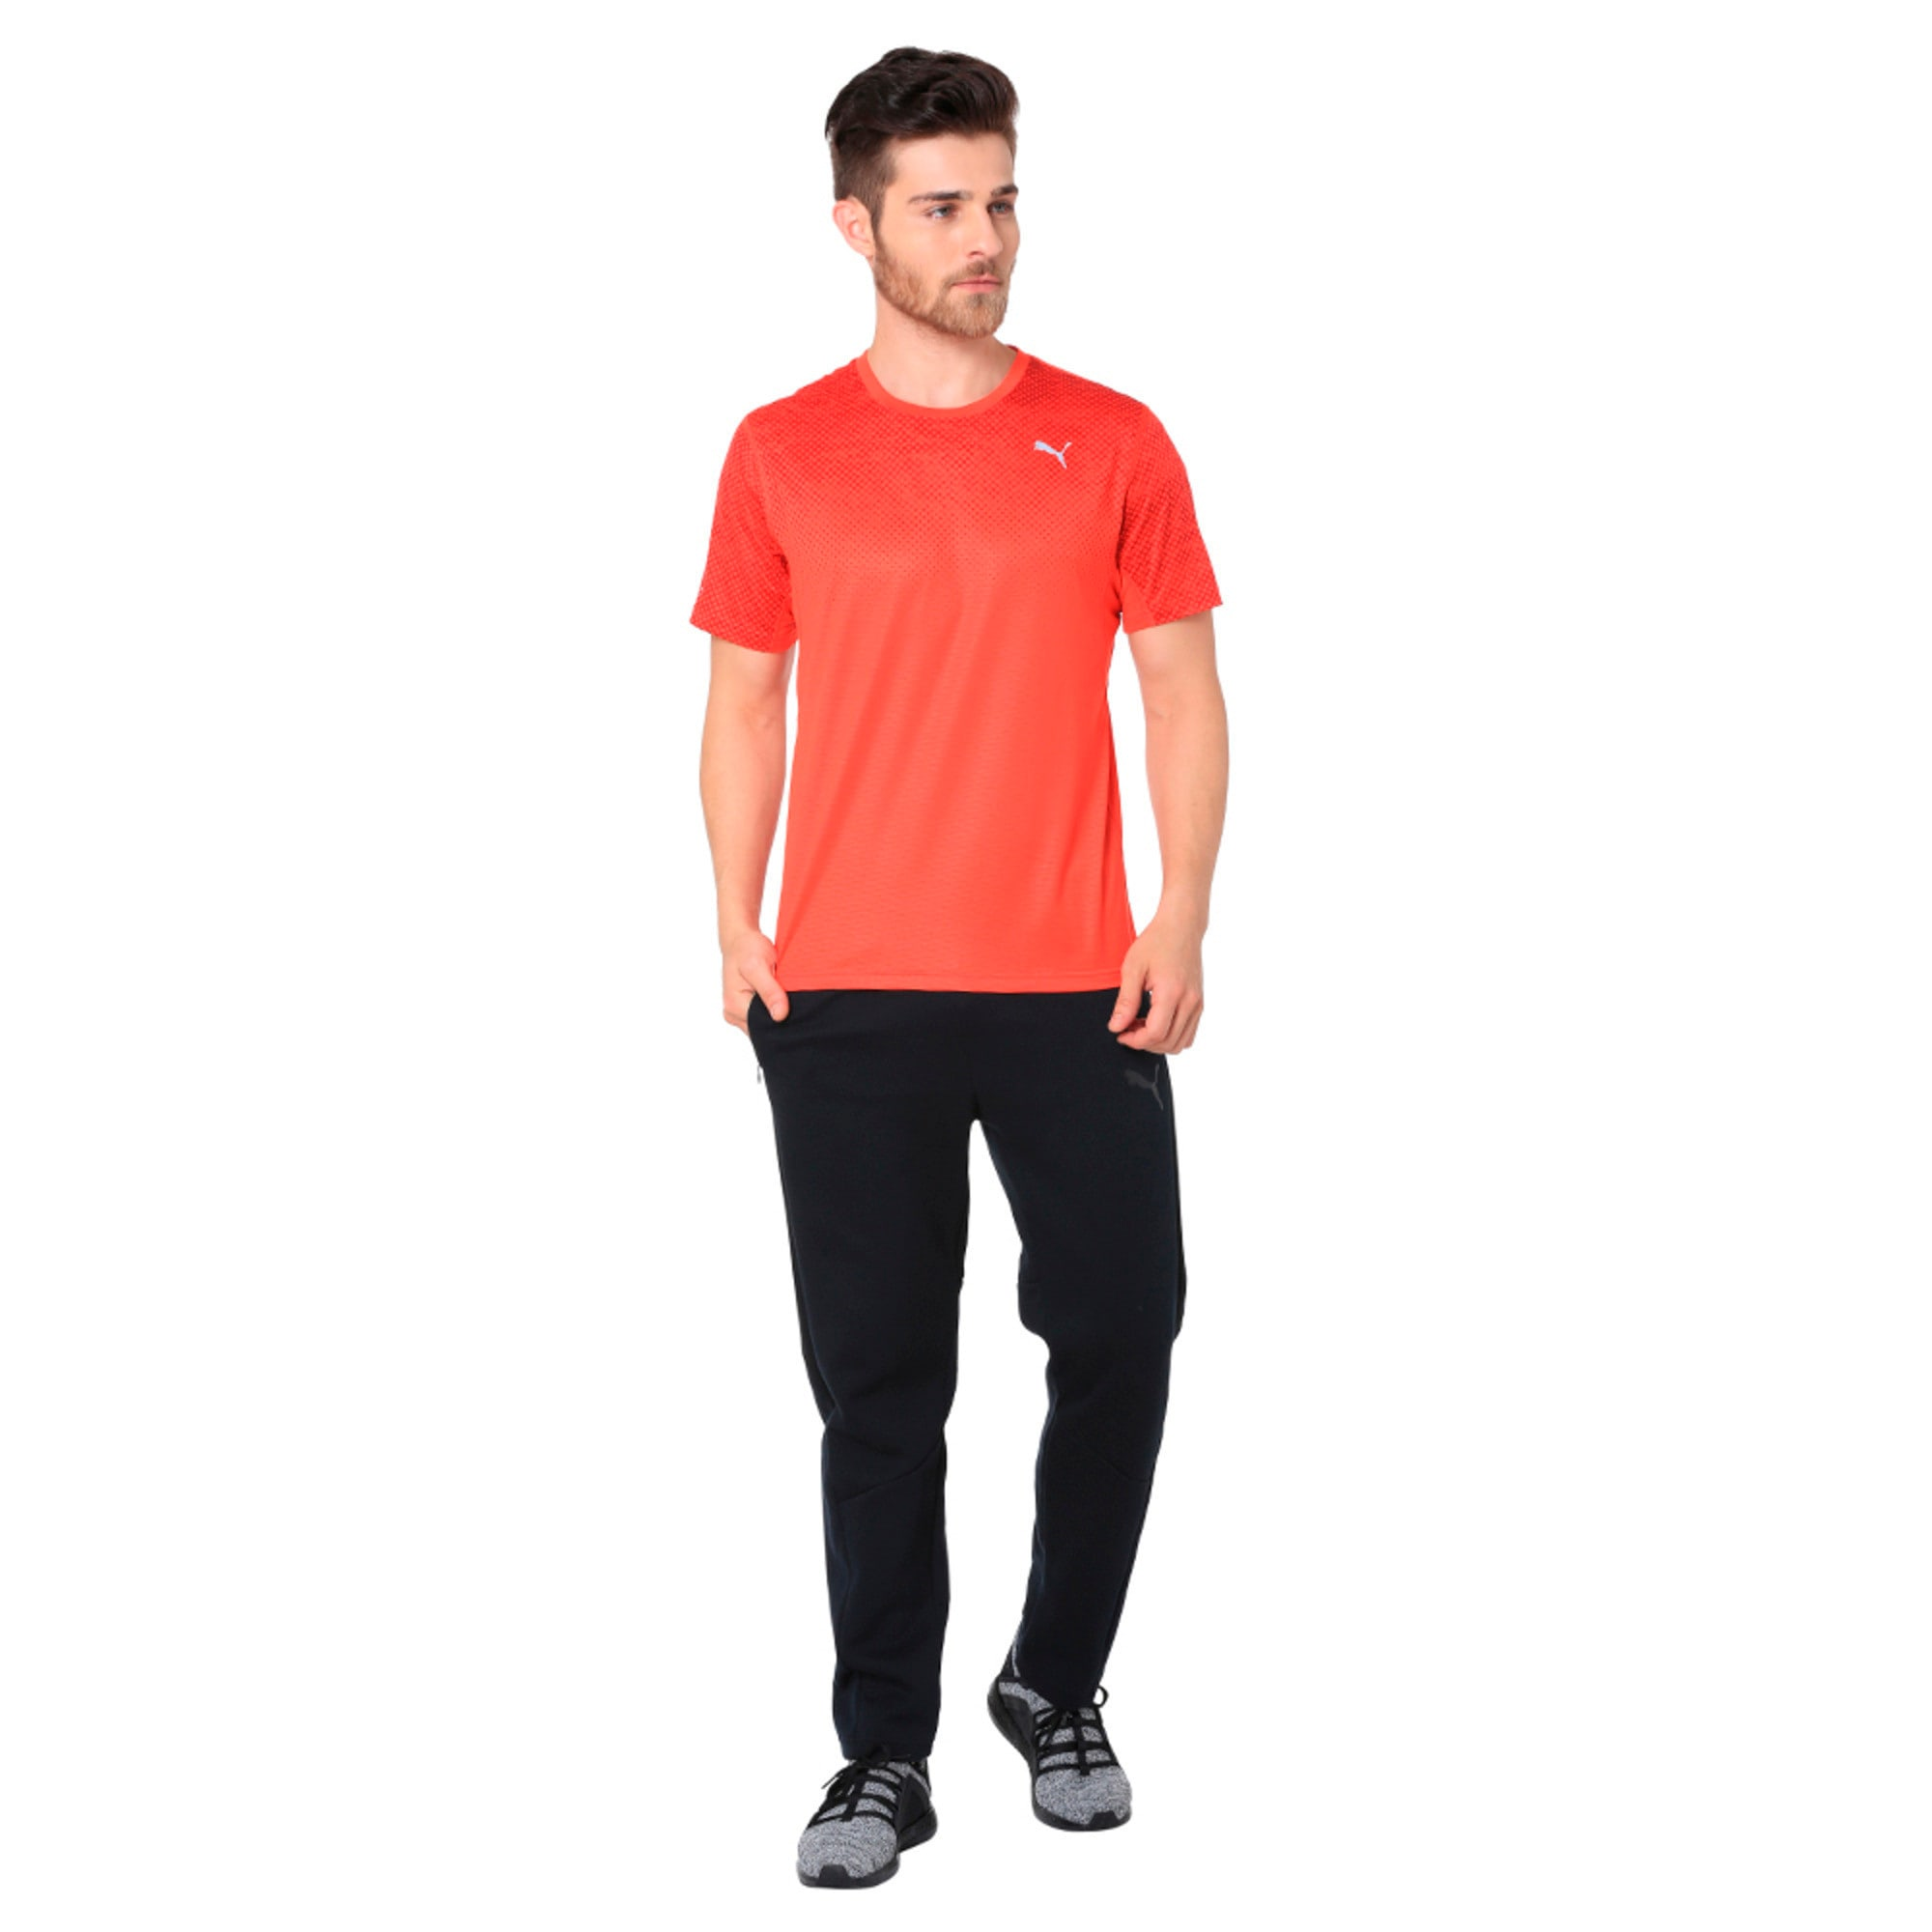 Thumbnail 2 of Graphic Short Sleeve Men's Running T-Shirt, Flame Scarlet, medium-IND